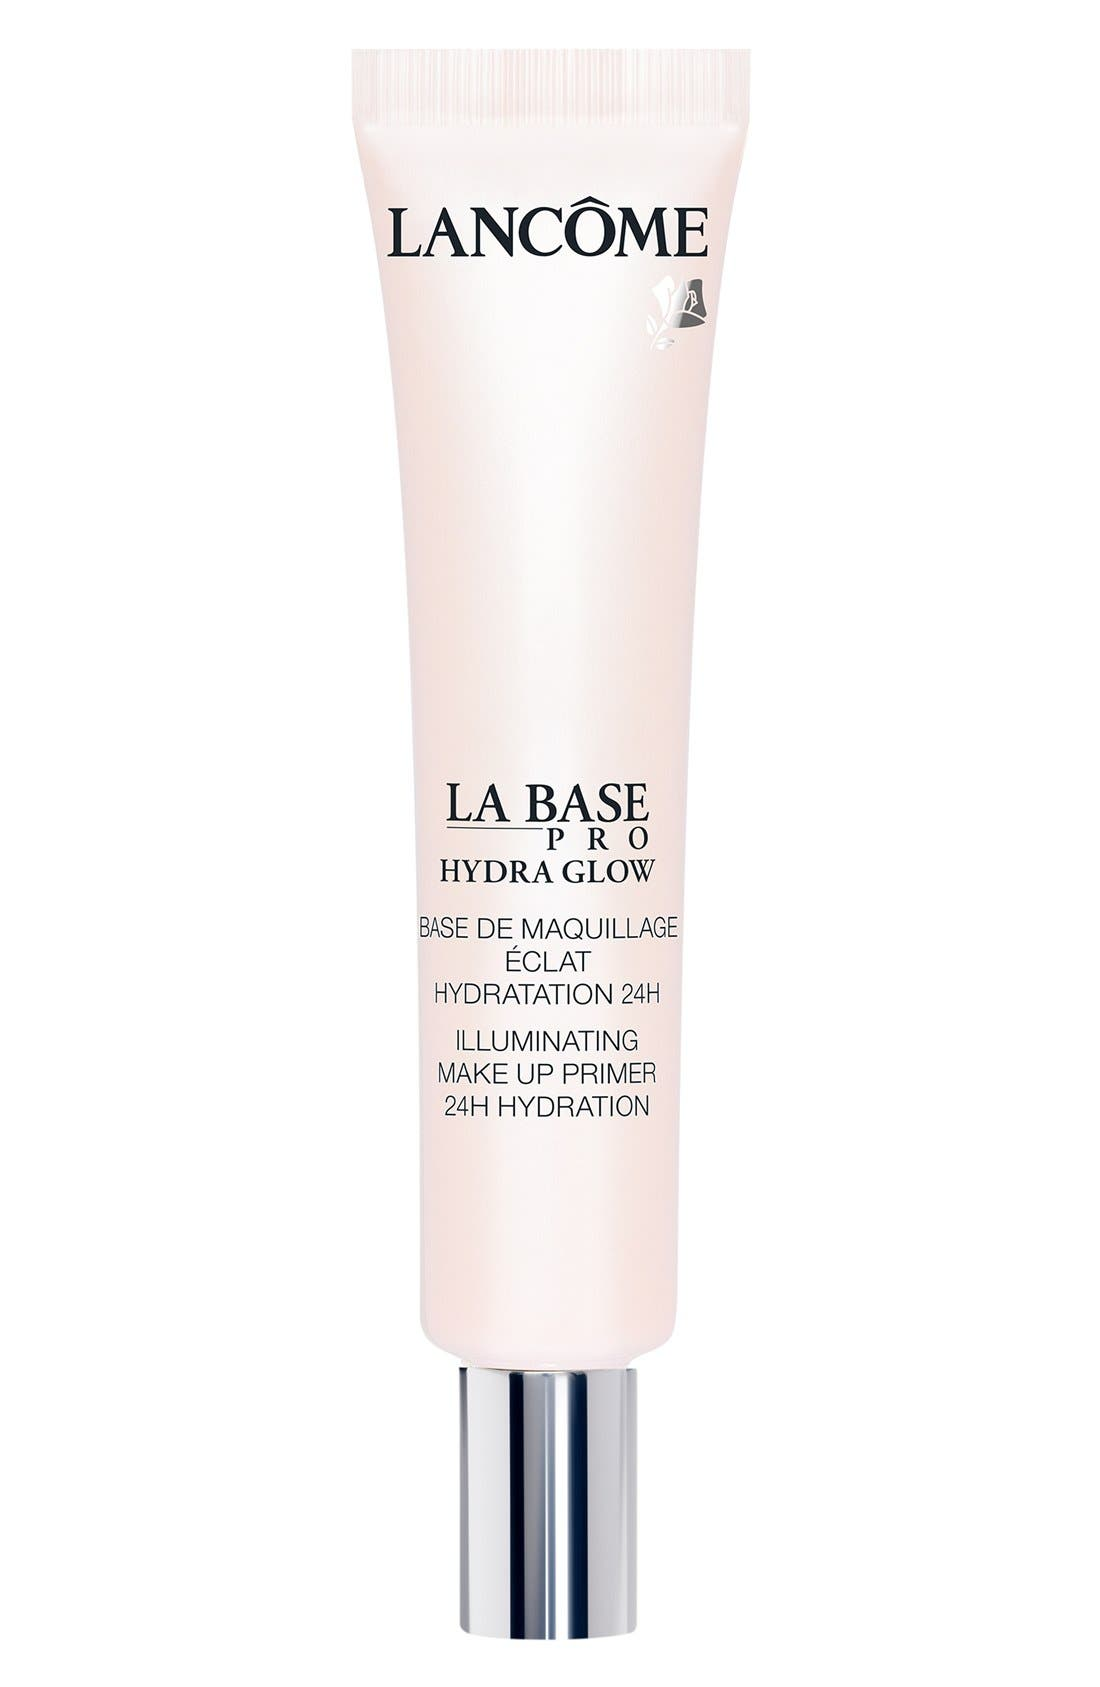 Lancôme La Base Pro - Hydra Glow Illuminating Makeup Primer 24-Hour Hydration